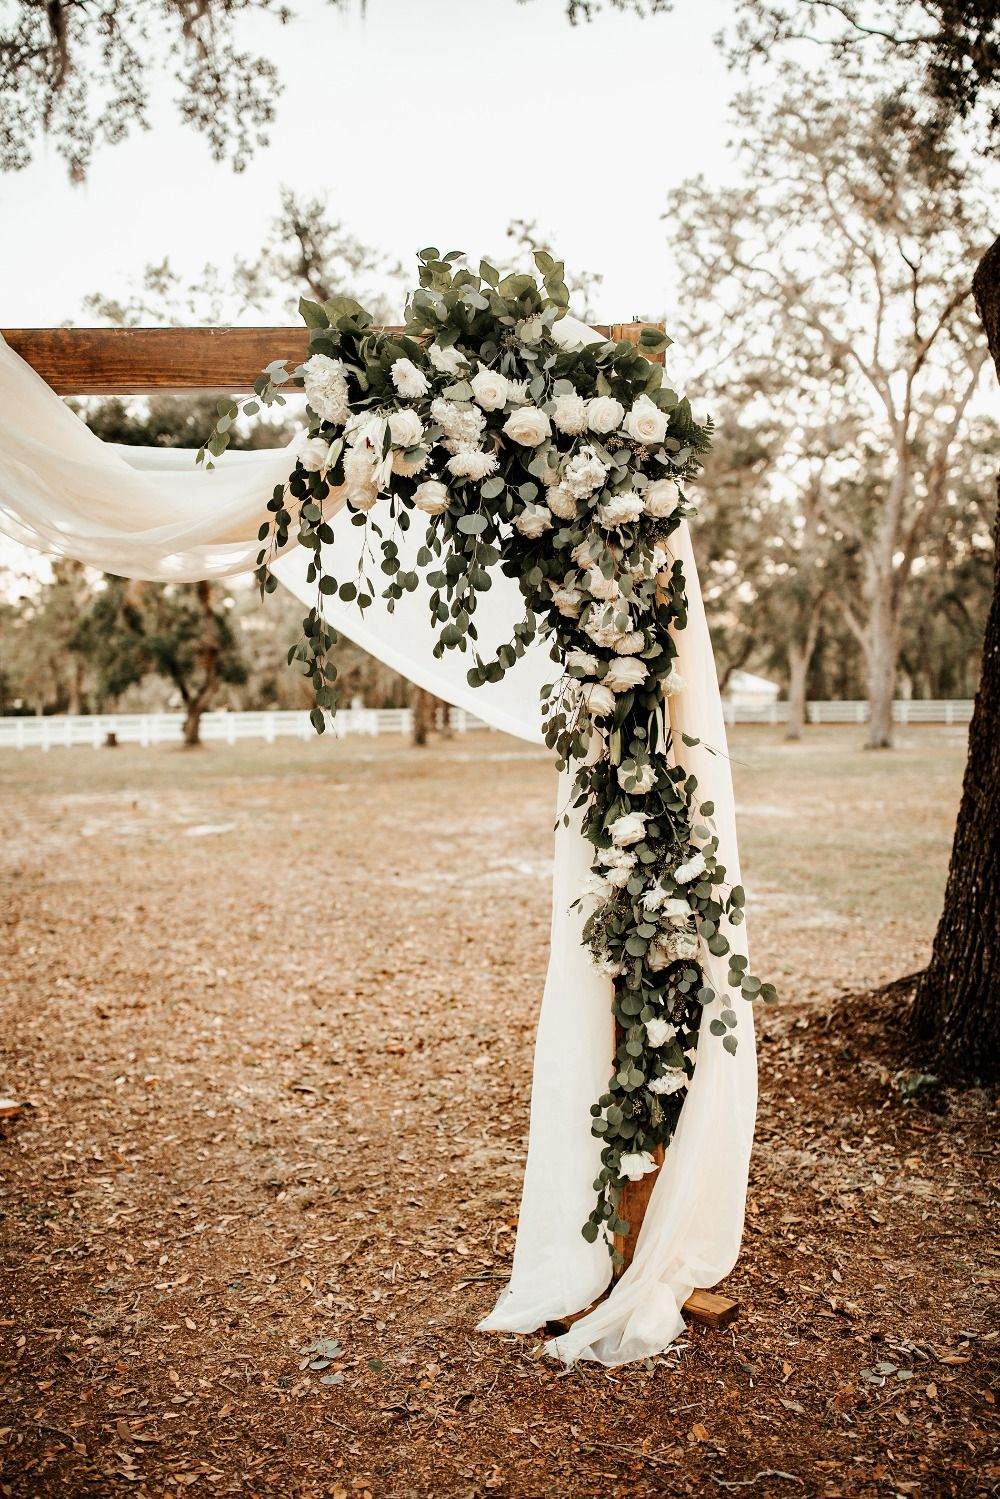 A Whimsical November Wedding in Florida with a Huge Bridal